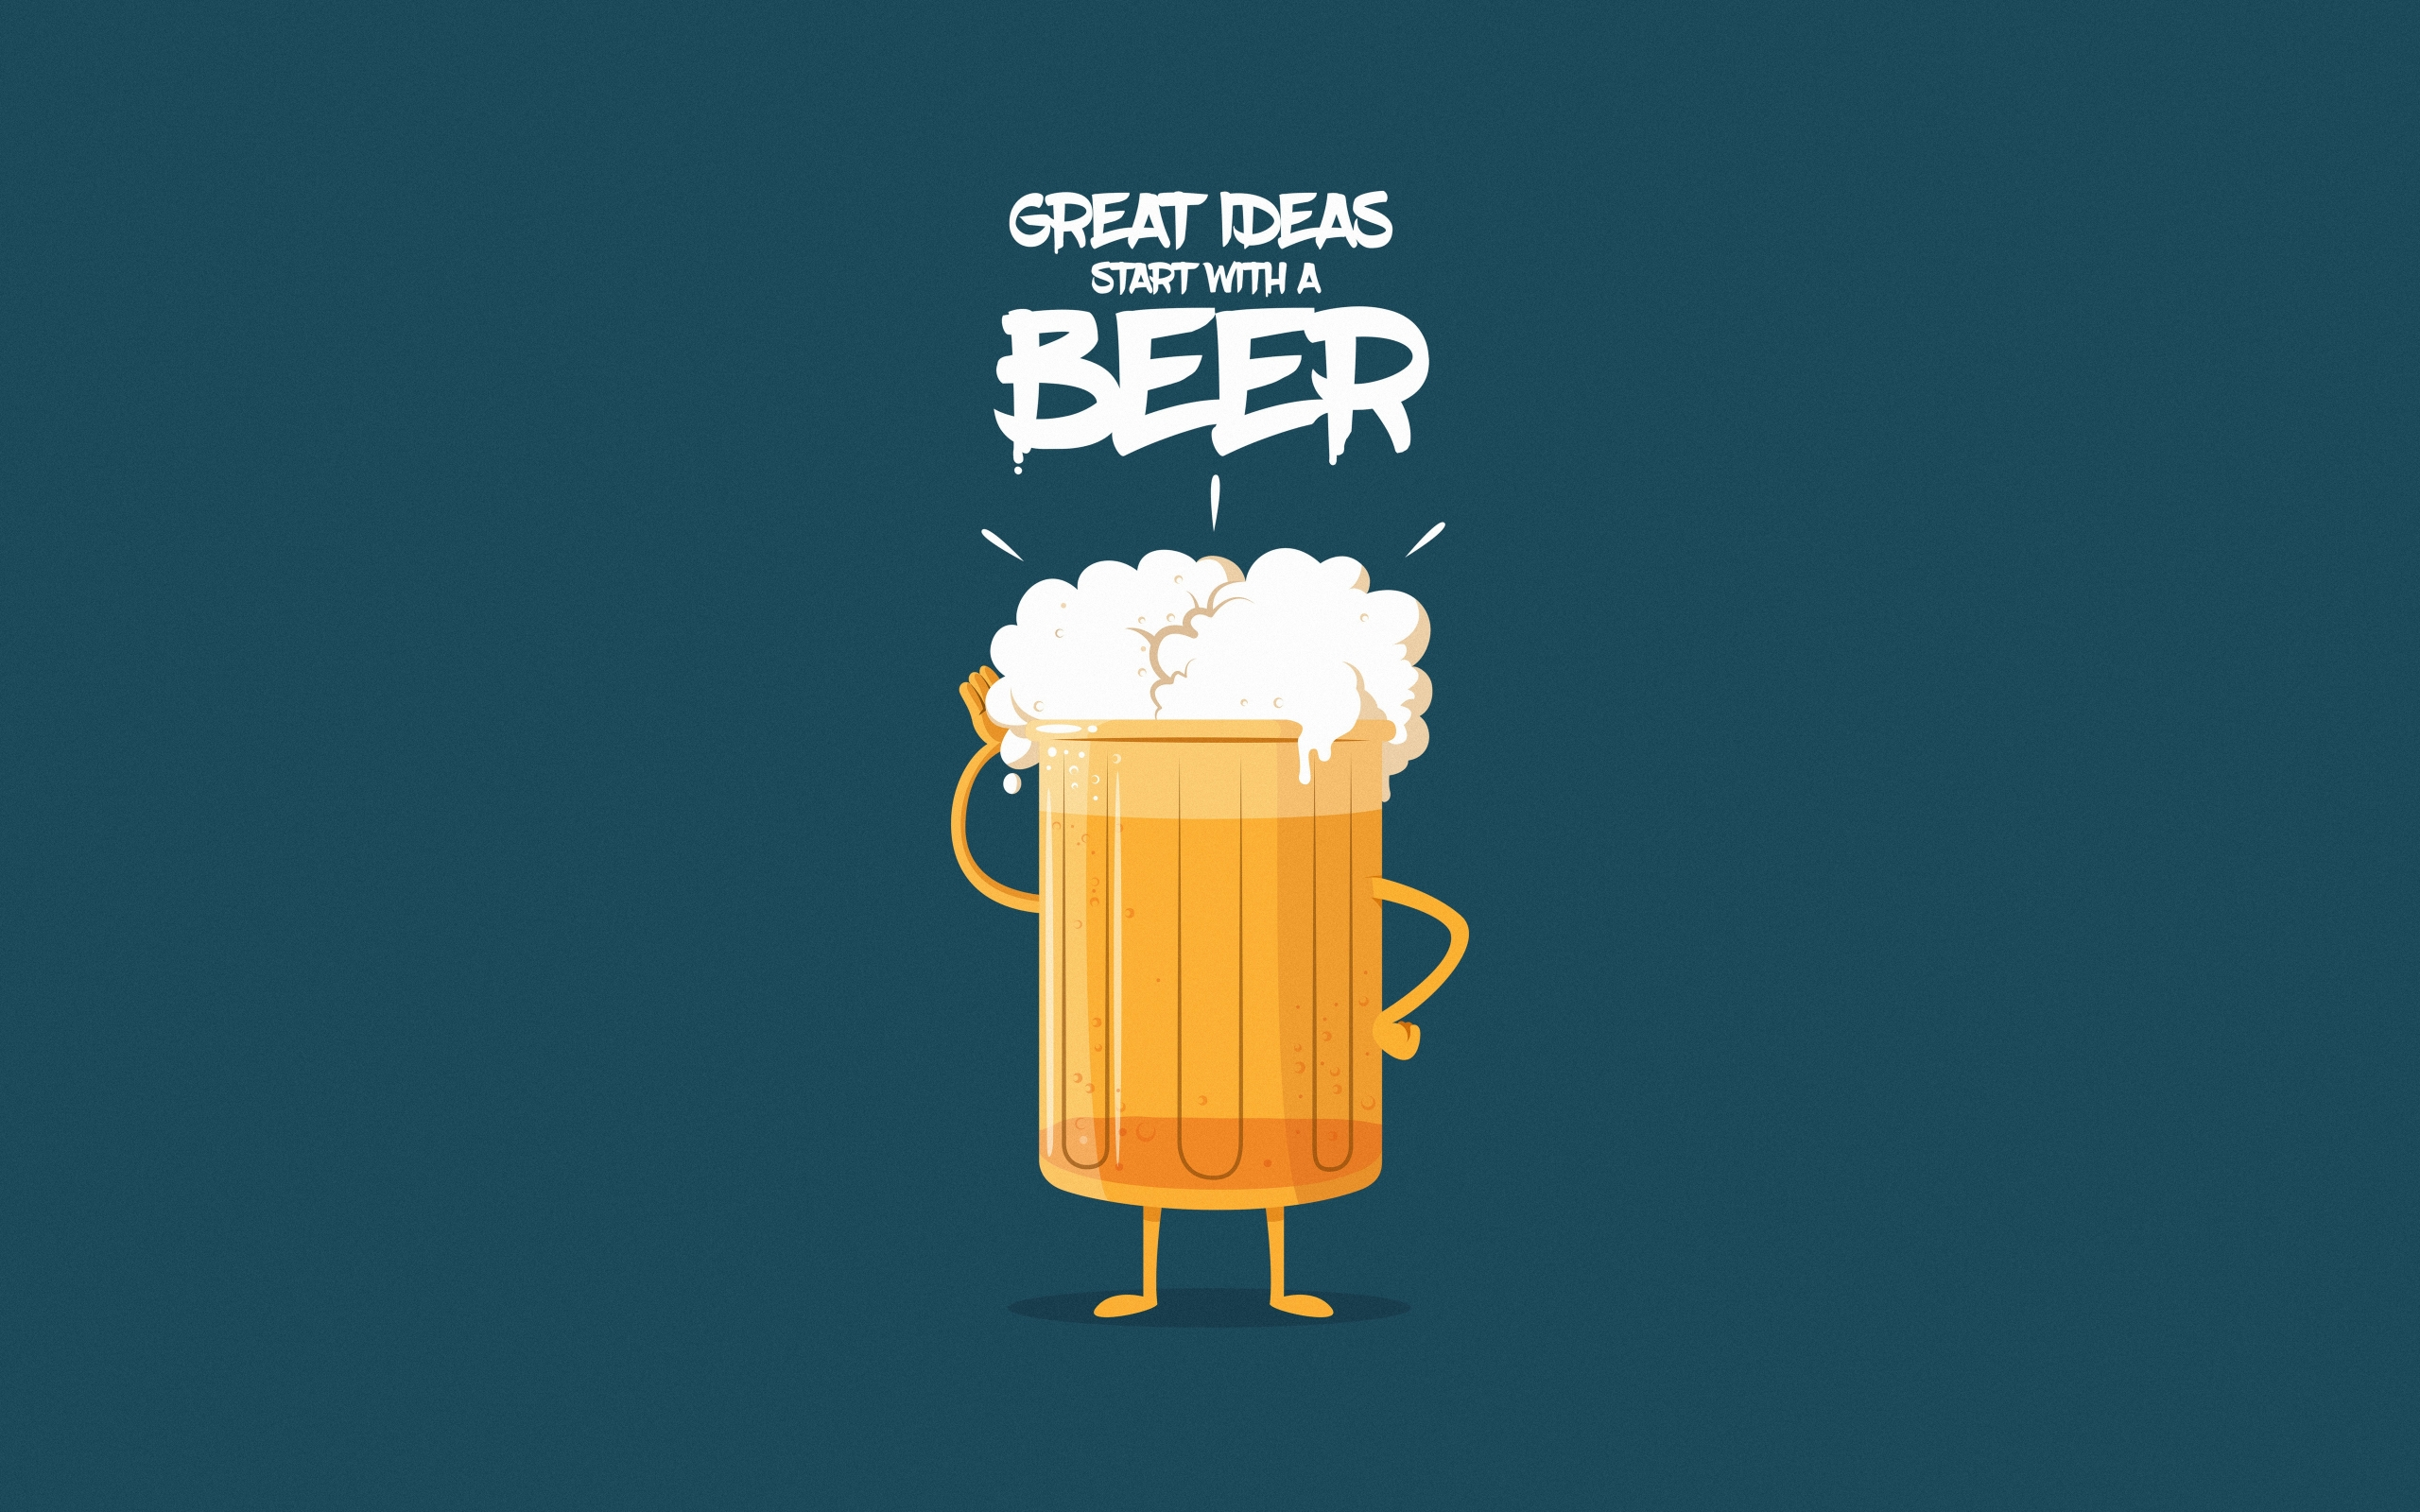 Wallpaper Of Beer Minimalist Humor Art Text Background